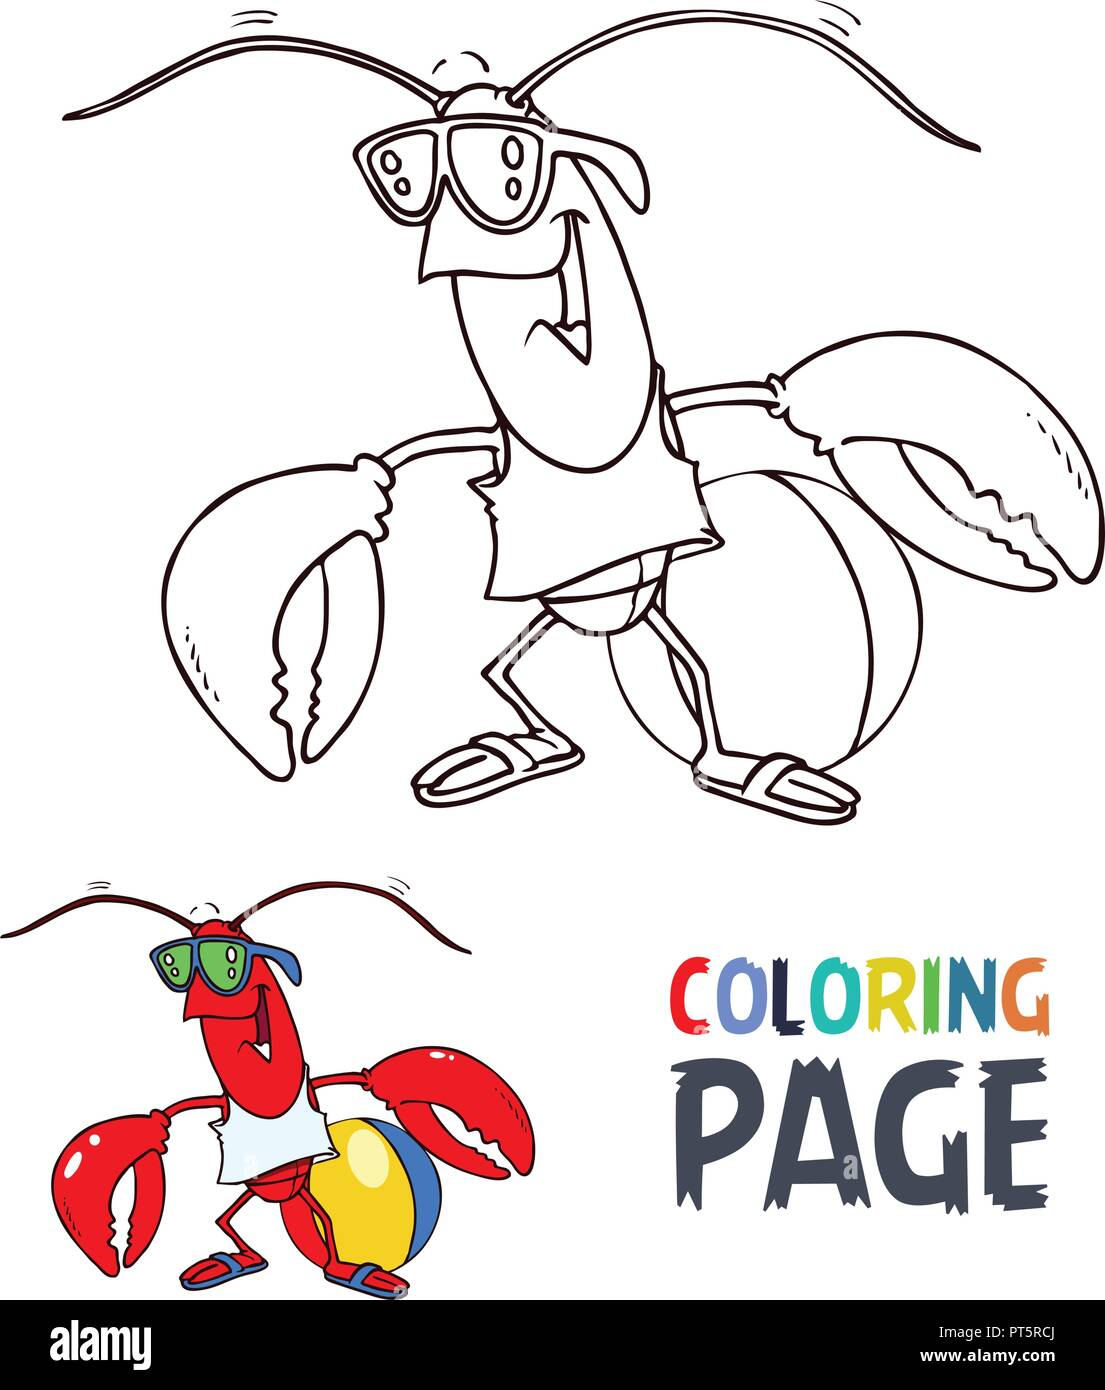 6800 Top Coloring Pages Of Cartoon Crab  Images